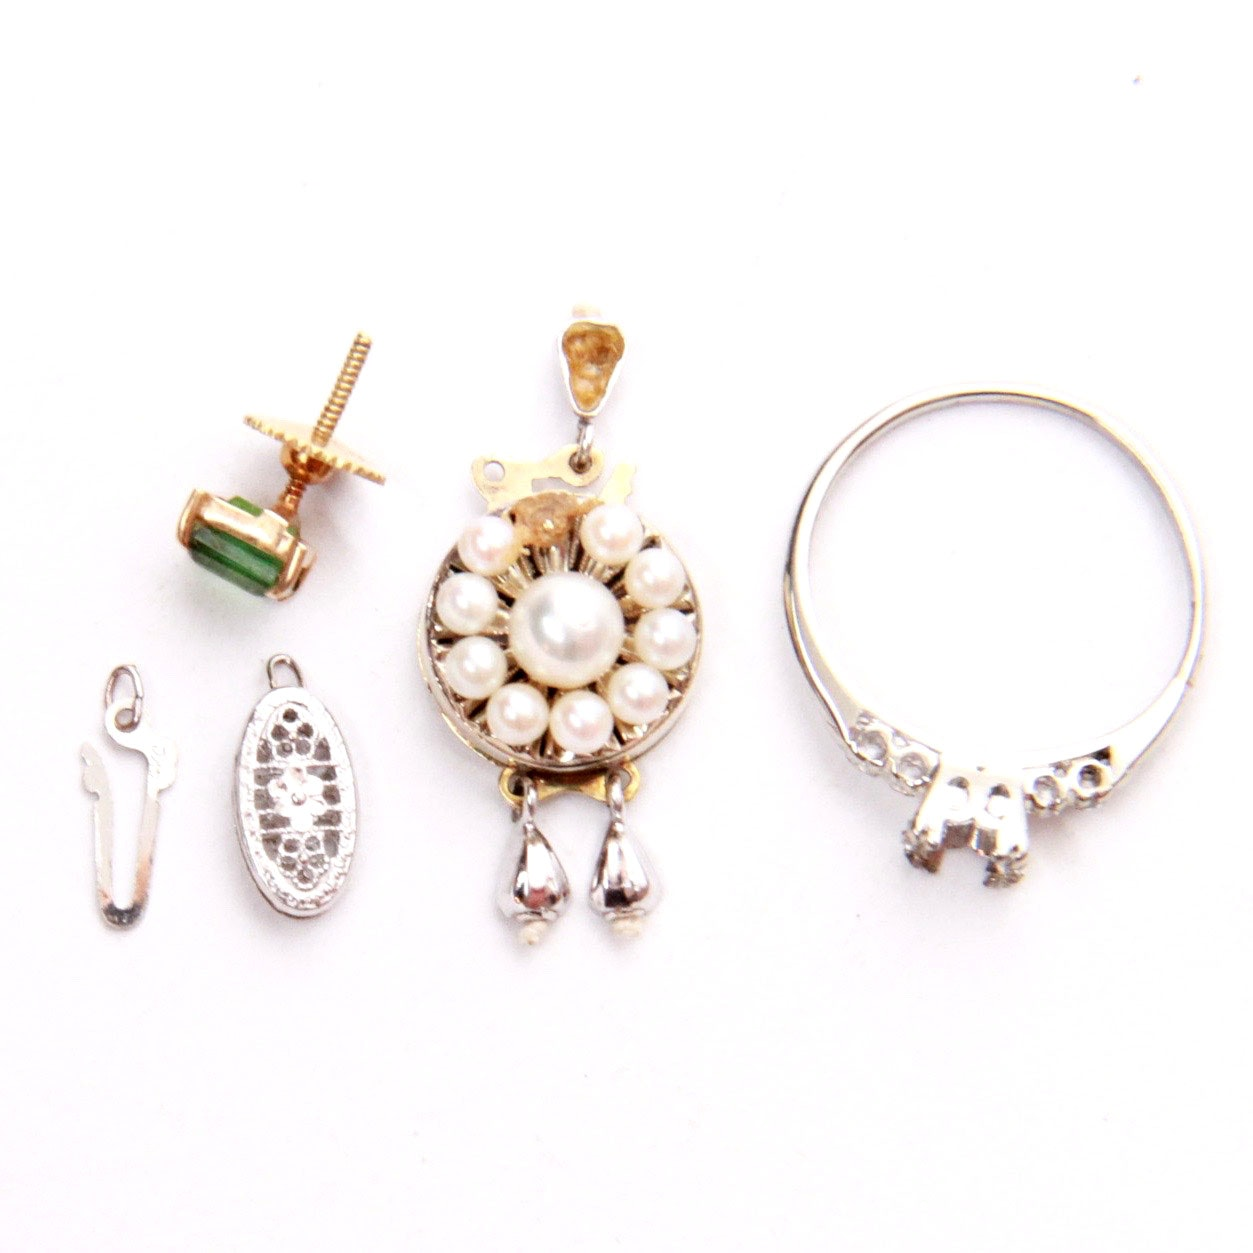 Grouping of Jewelry Parts Including 14K and 18K Gold